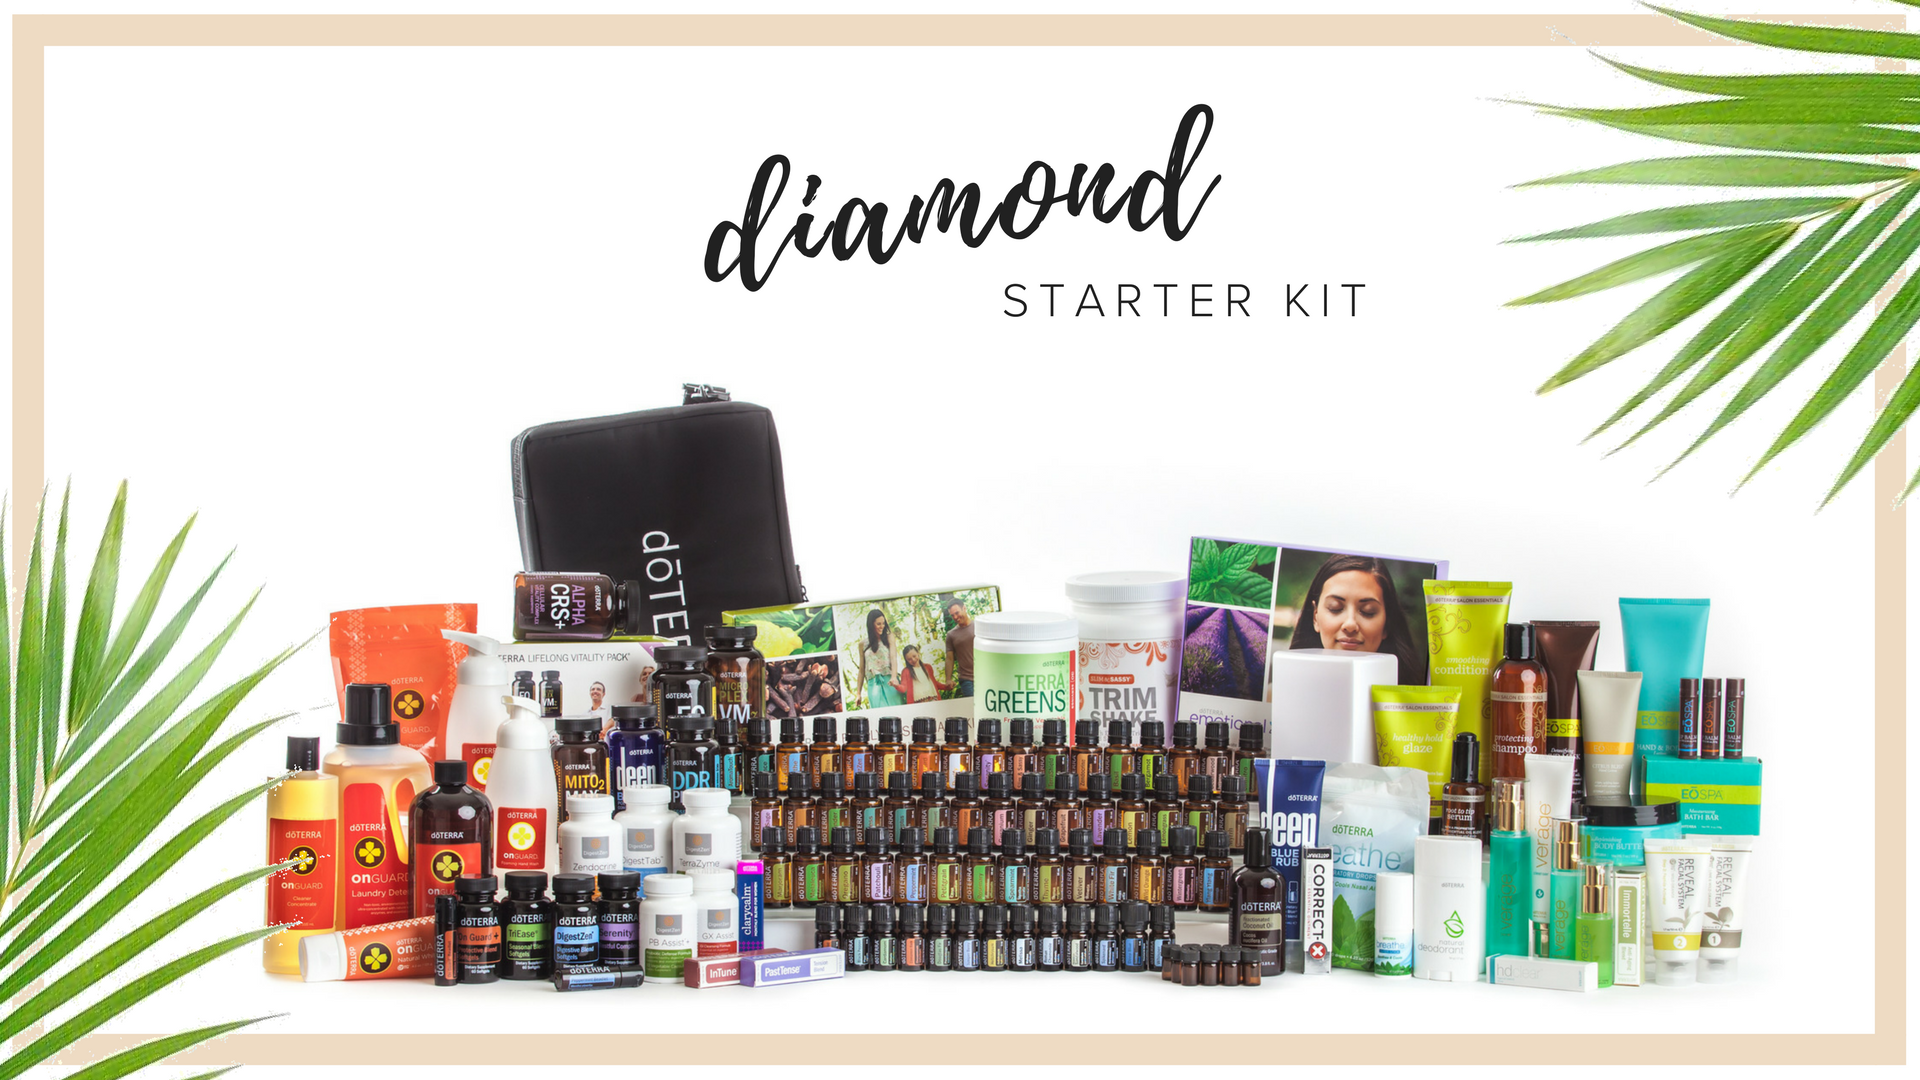 diamond KIt - $2,500  This is the Dream Kit. It comes with every oil and every product that doterra makes including the Emotional Aromatherapy Collection, the entire On Guard line to replace all your cleaning products, the lifelong vitality pack, all the supplements, everything to support nutrition and fitness, the Verage skincare system, our sulfate-free haircare line, all the bath and spa products, an 8 hour diffuser,and of course every single oil in a beautiful display case.  Retail Cost $3,333. Wholesale Kit Price $2,500. $800 in Savings plus you're eligible to receive an additional $400 in product credits when you place your 100 pv Loyalty Rewards order the following month and you jump on the Fast track at 25% rebate on loyalty orders.  all new memberships include Exclusive aila love welcome gifts, a personal consultation with maile, ongoing education opportunities & a support community.